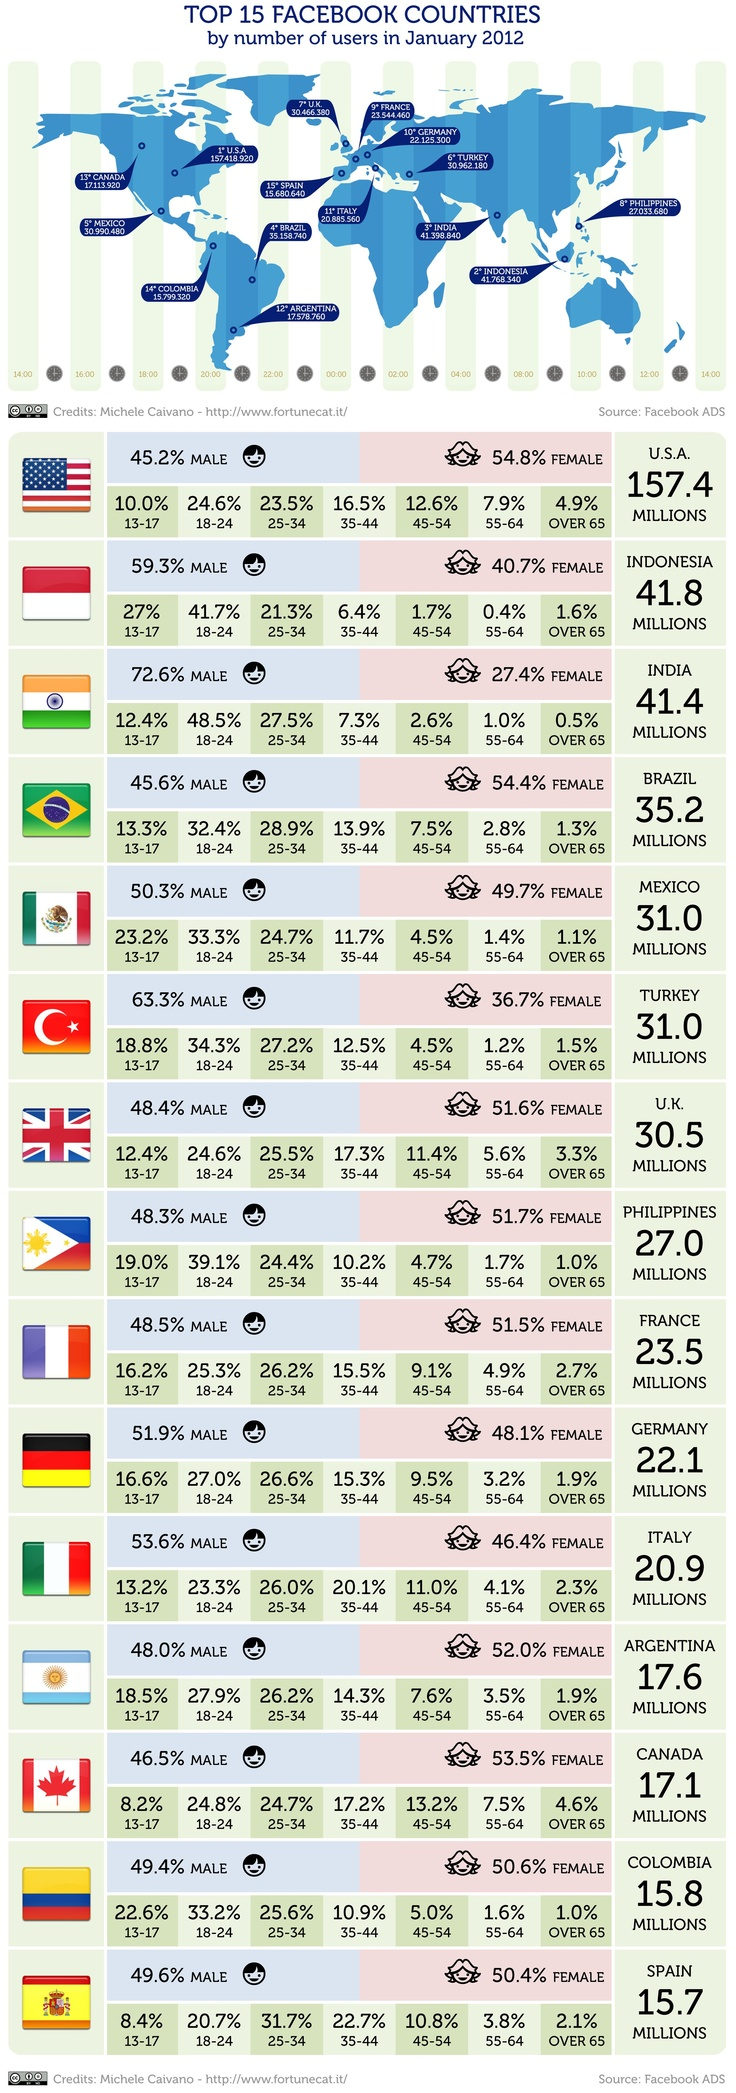 The world's top 15 Facebook markets in 2012 (U.S.A., Indonesia, India, Brazil, Mexico, Turkey, U.K., Philippines, France, Germany, Italy, Argentina, Canada, Colombia and Spain) #infographic by www.Fortunecat.it